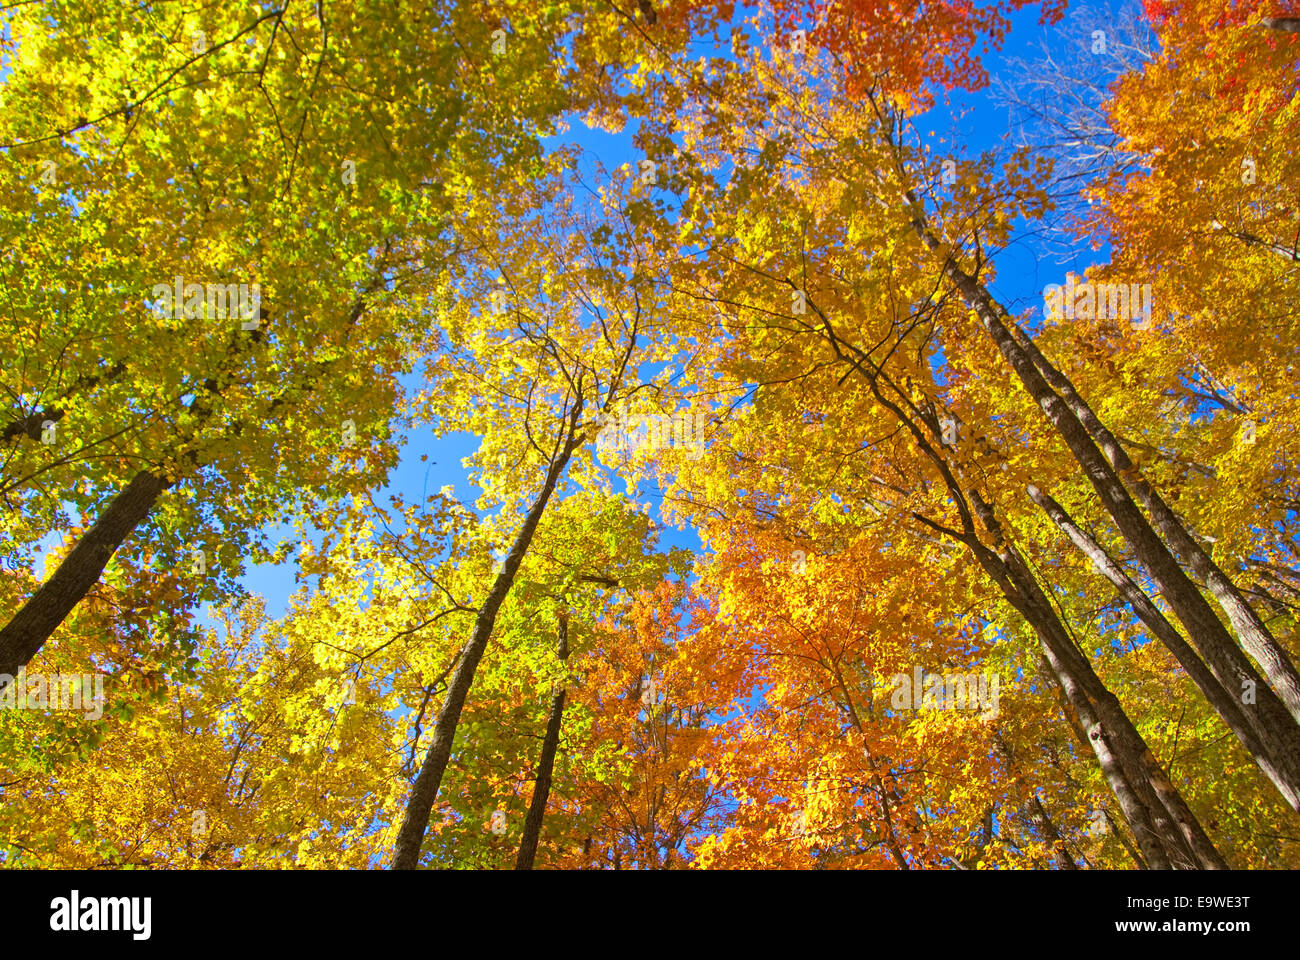 Great Smoky Mountains National Park autumn color - Stock Image